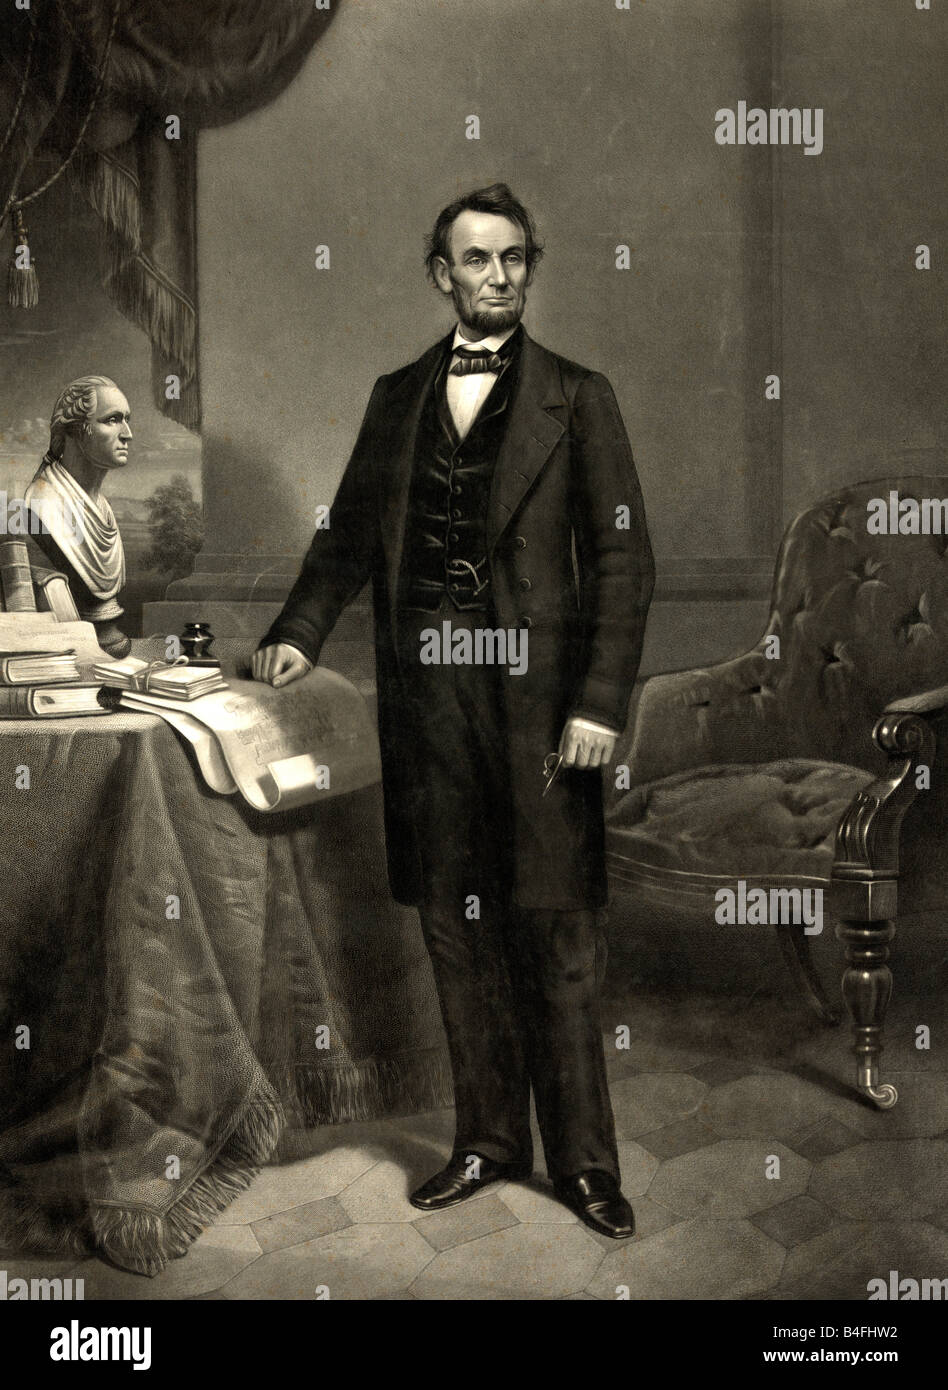 Portrait Of Abraham Lincoln 16th President Of The United